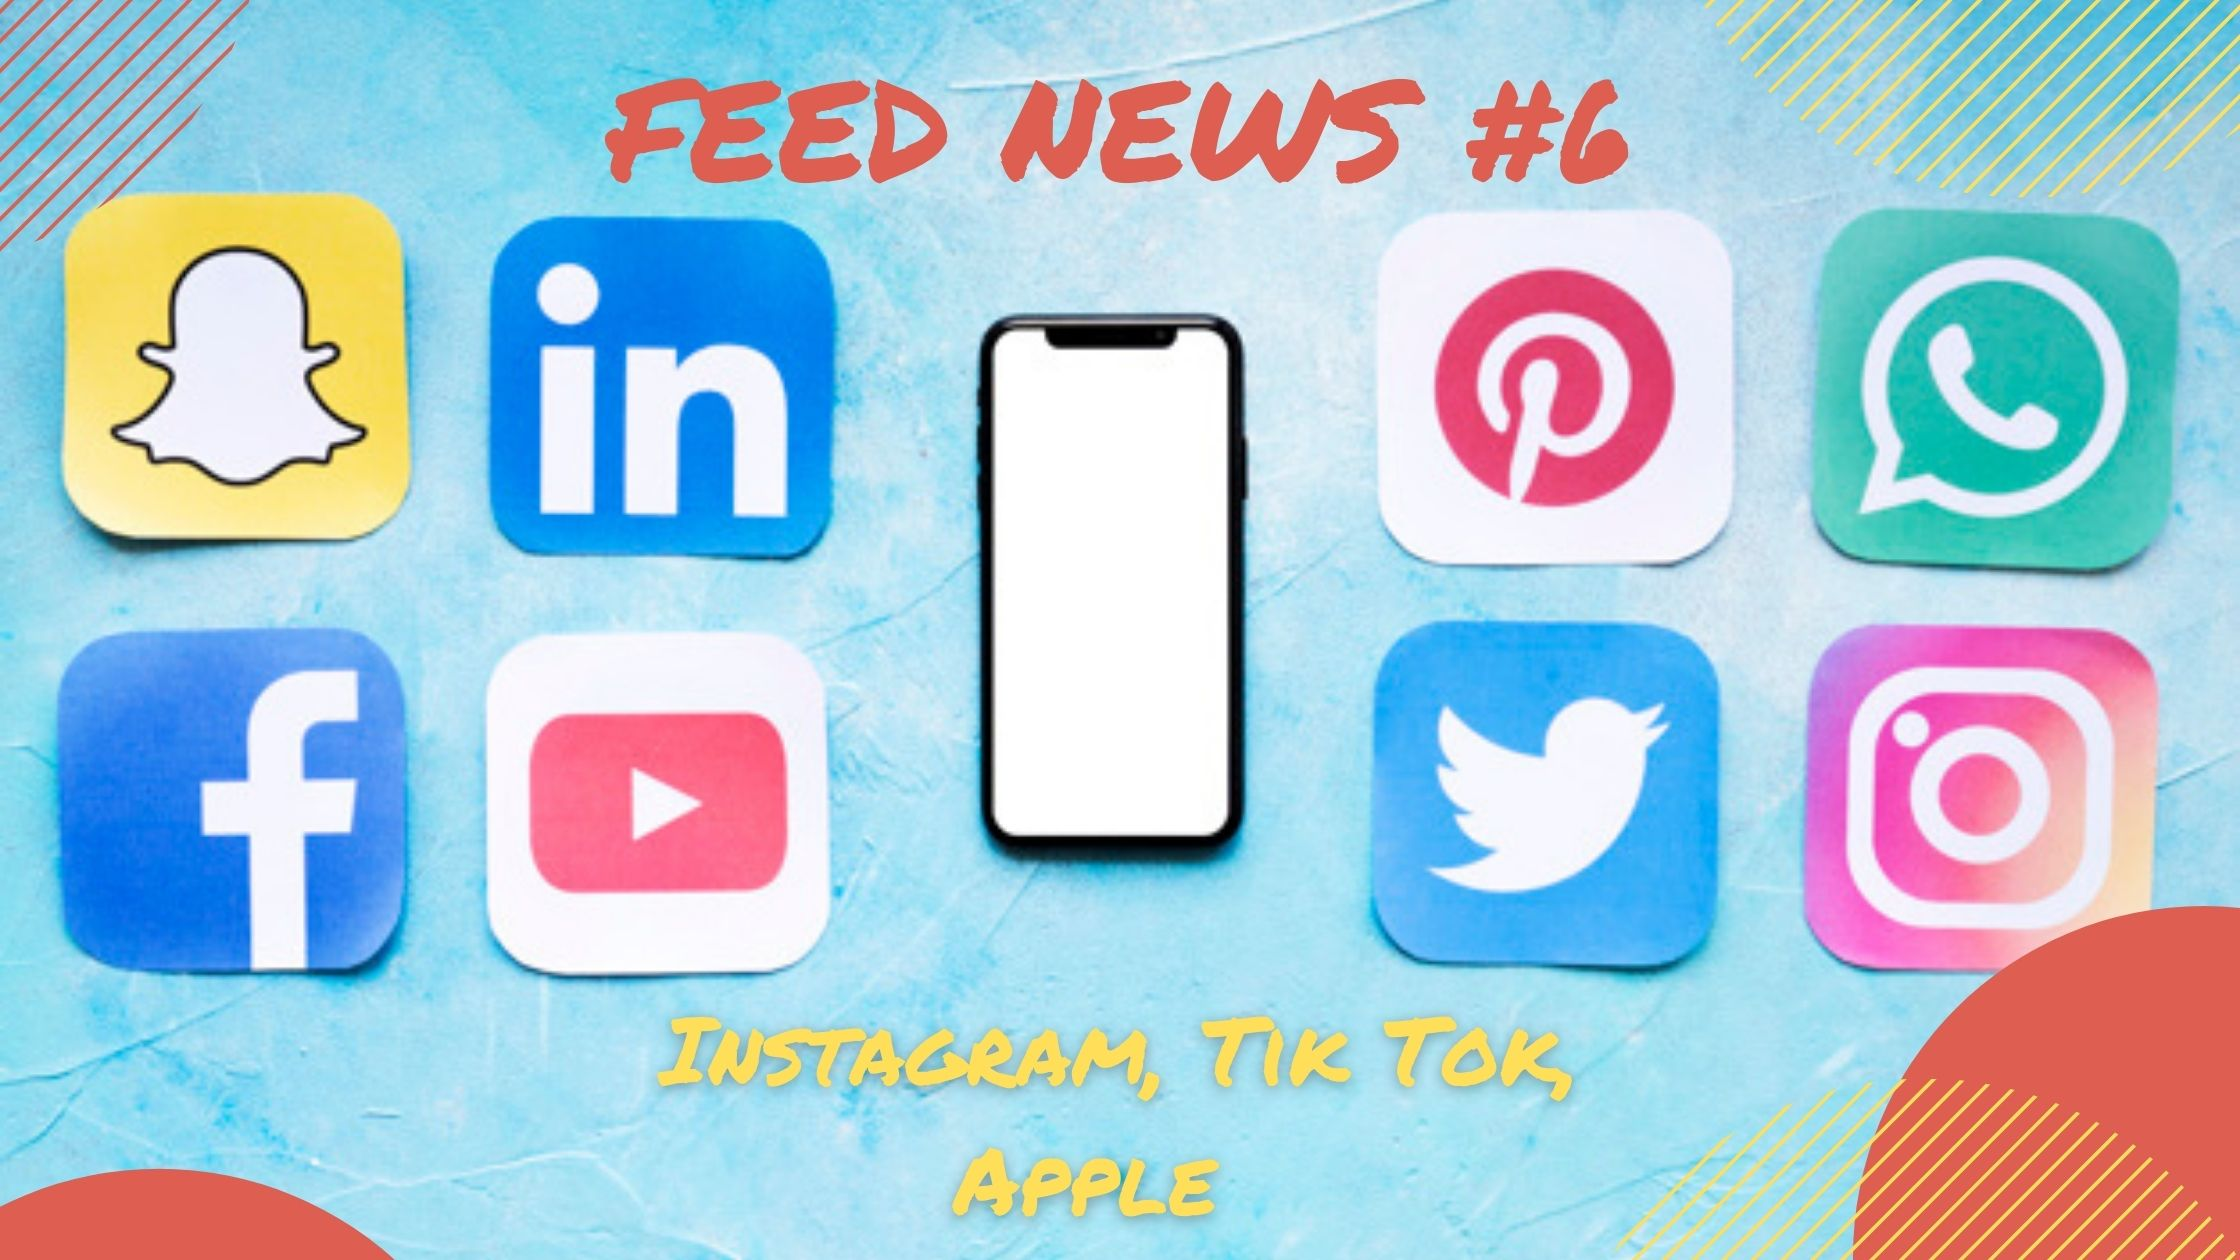 Feed News #6 Septembre : Instagram, TikTok, Apple